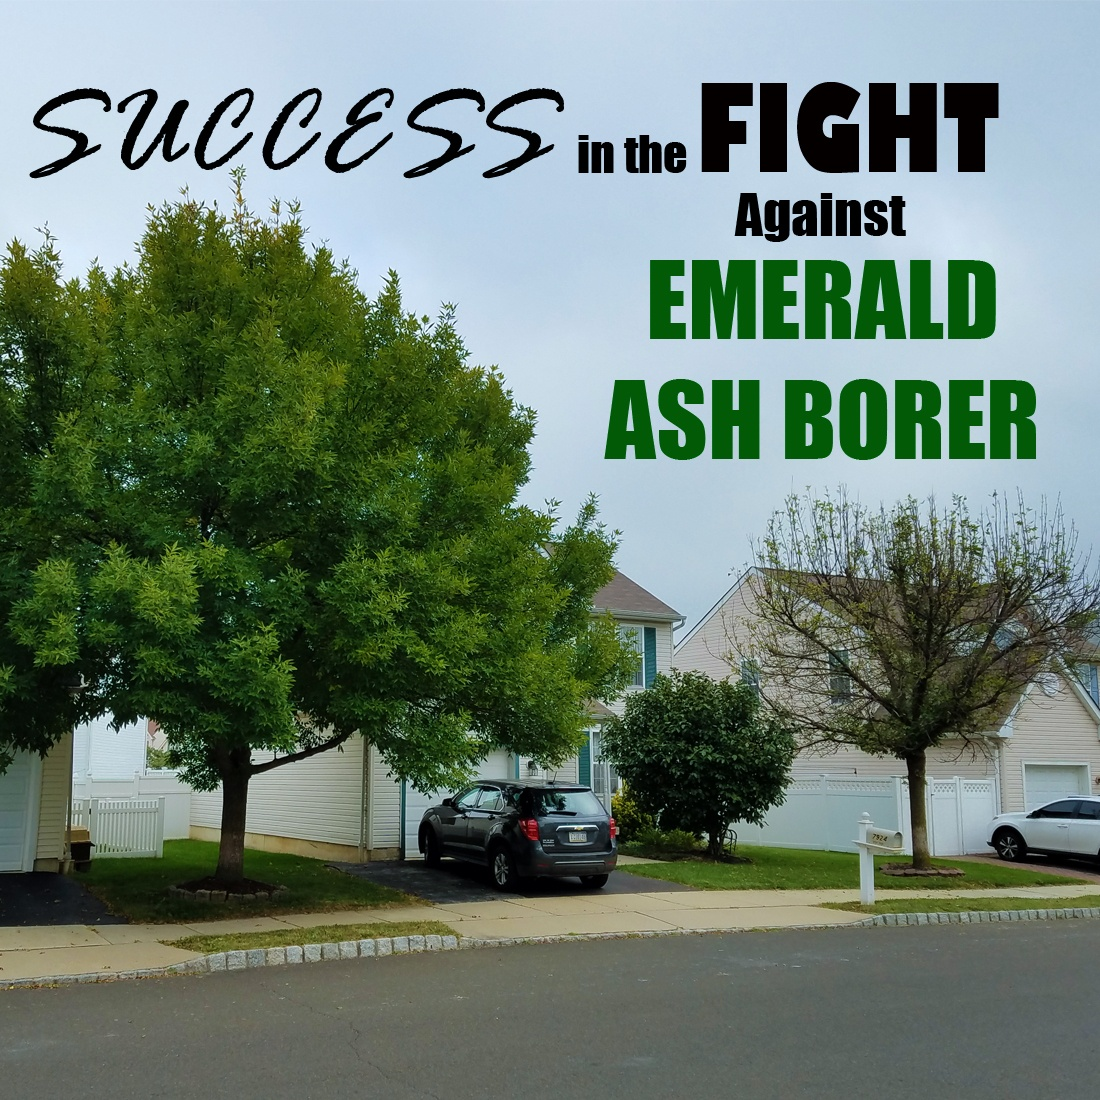 Success in the Fight Against Emerald Ash Borers